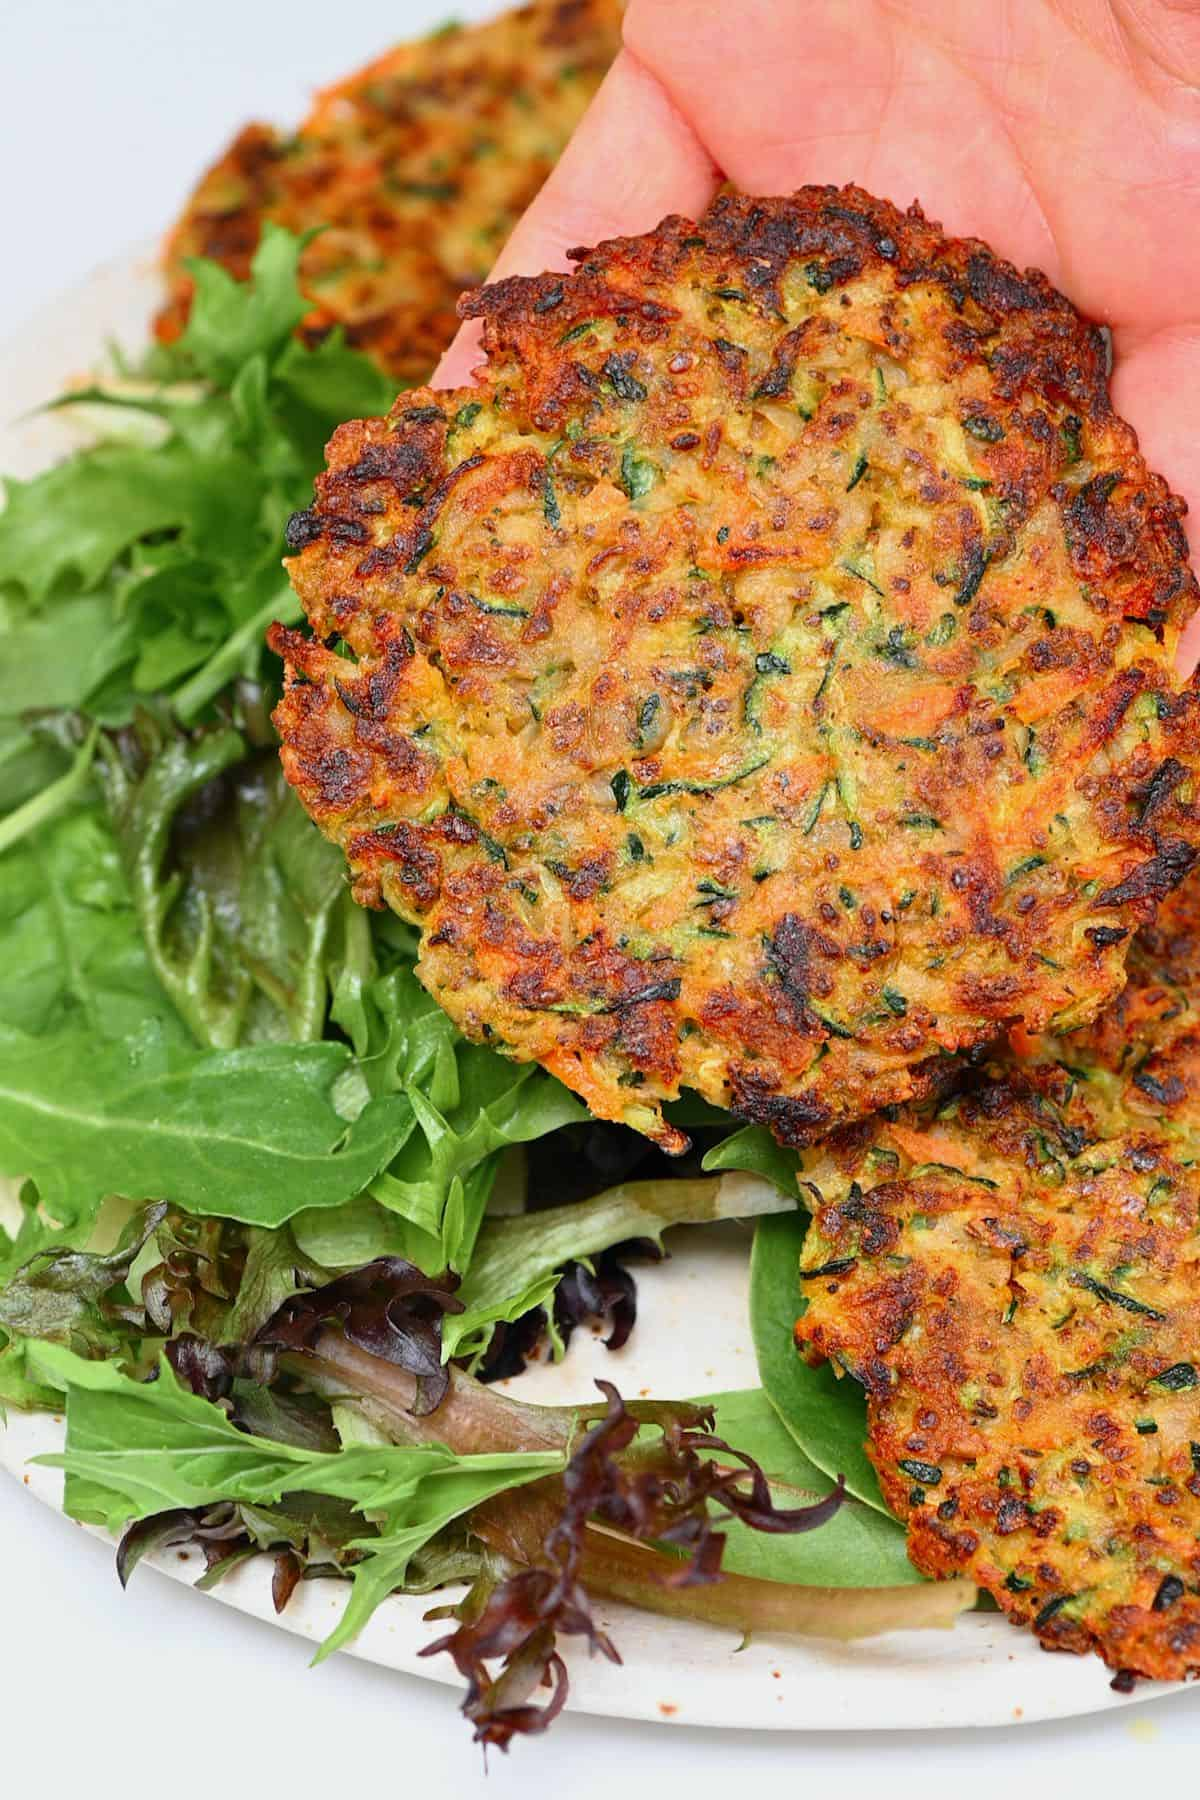 Veggie fritter and salad